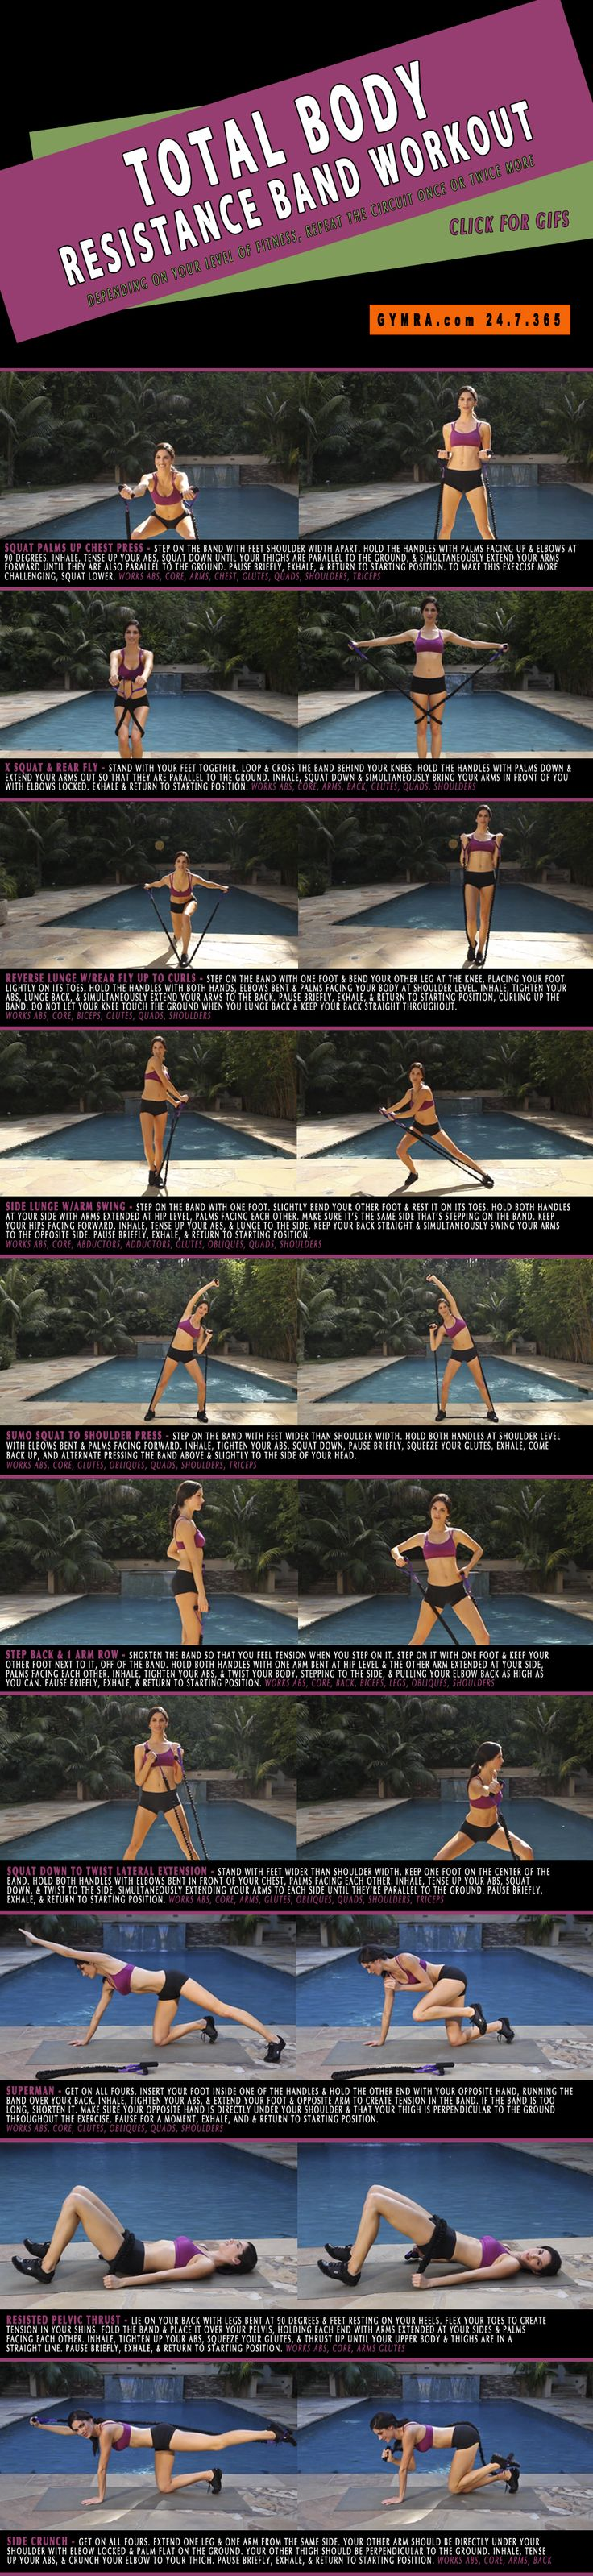 Total Body Resistance Band Workout. Great for Strengthening. Click image to see the exercises in GIF form.